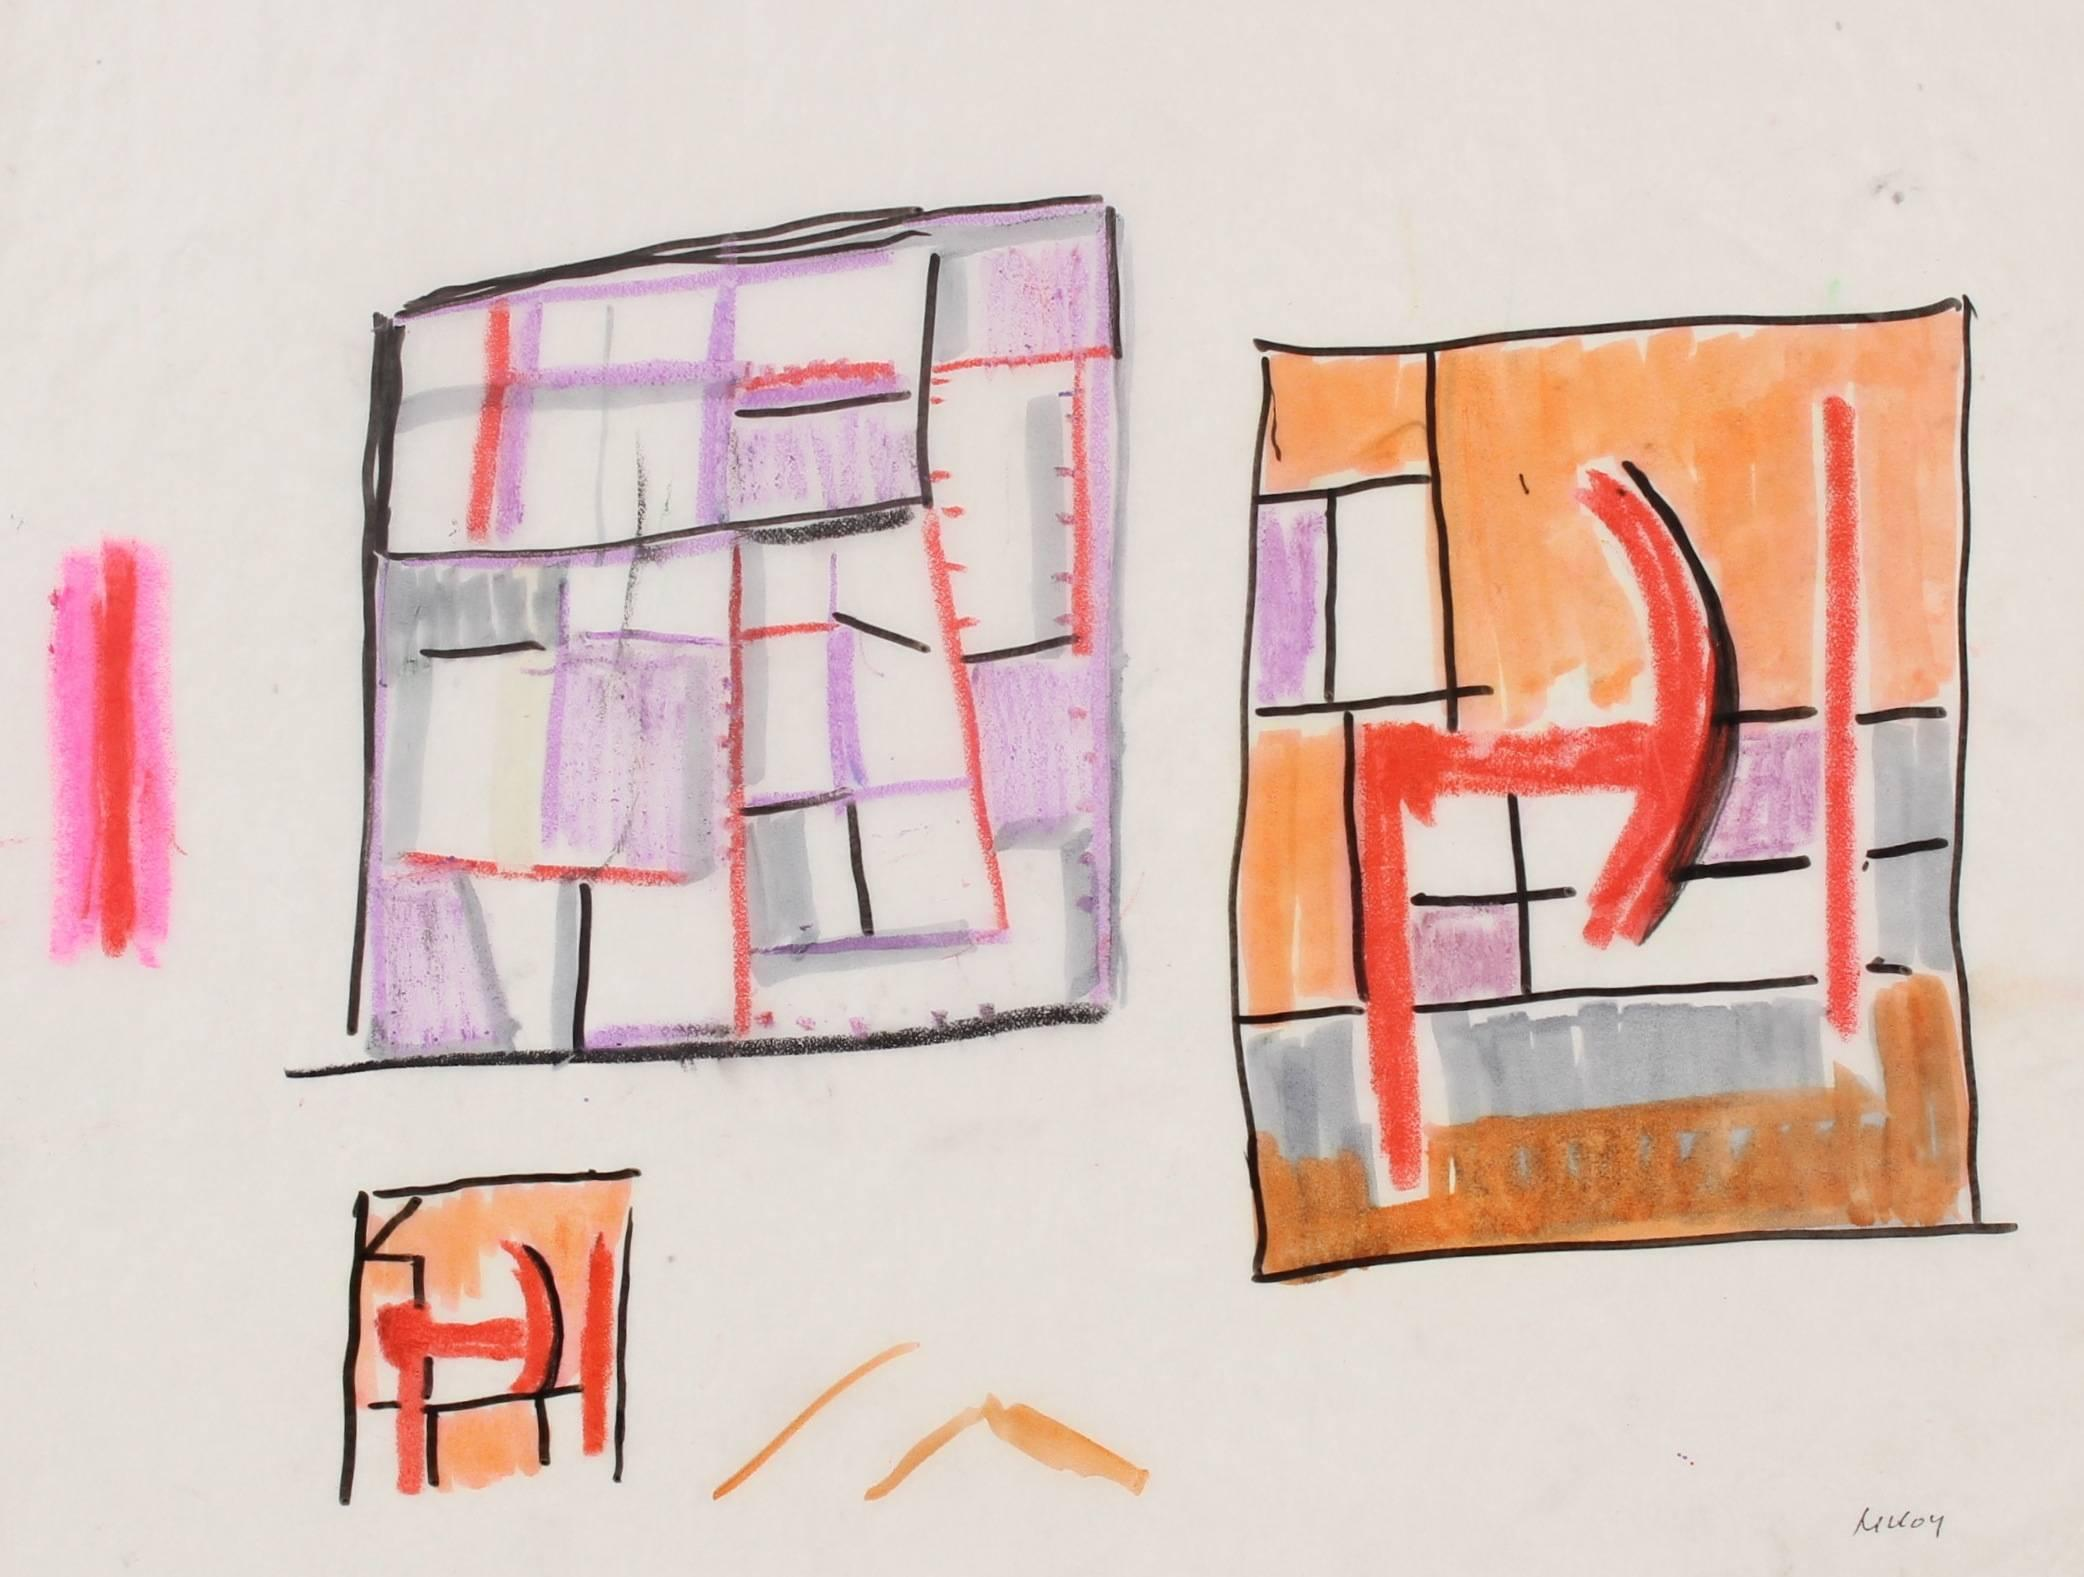 Geometric Abstract in Oil Pastel, Circa 1960s